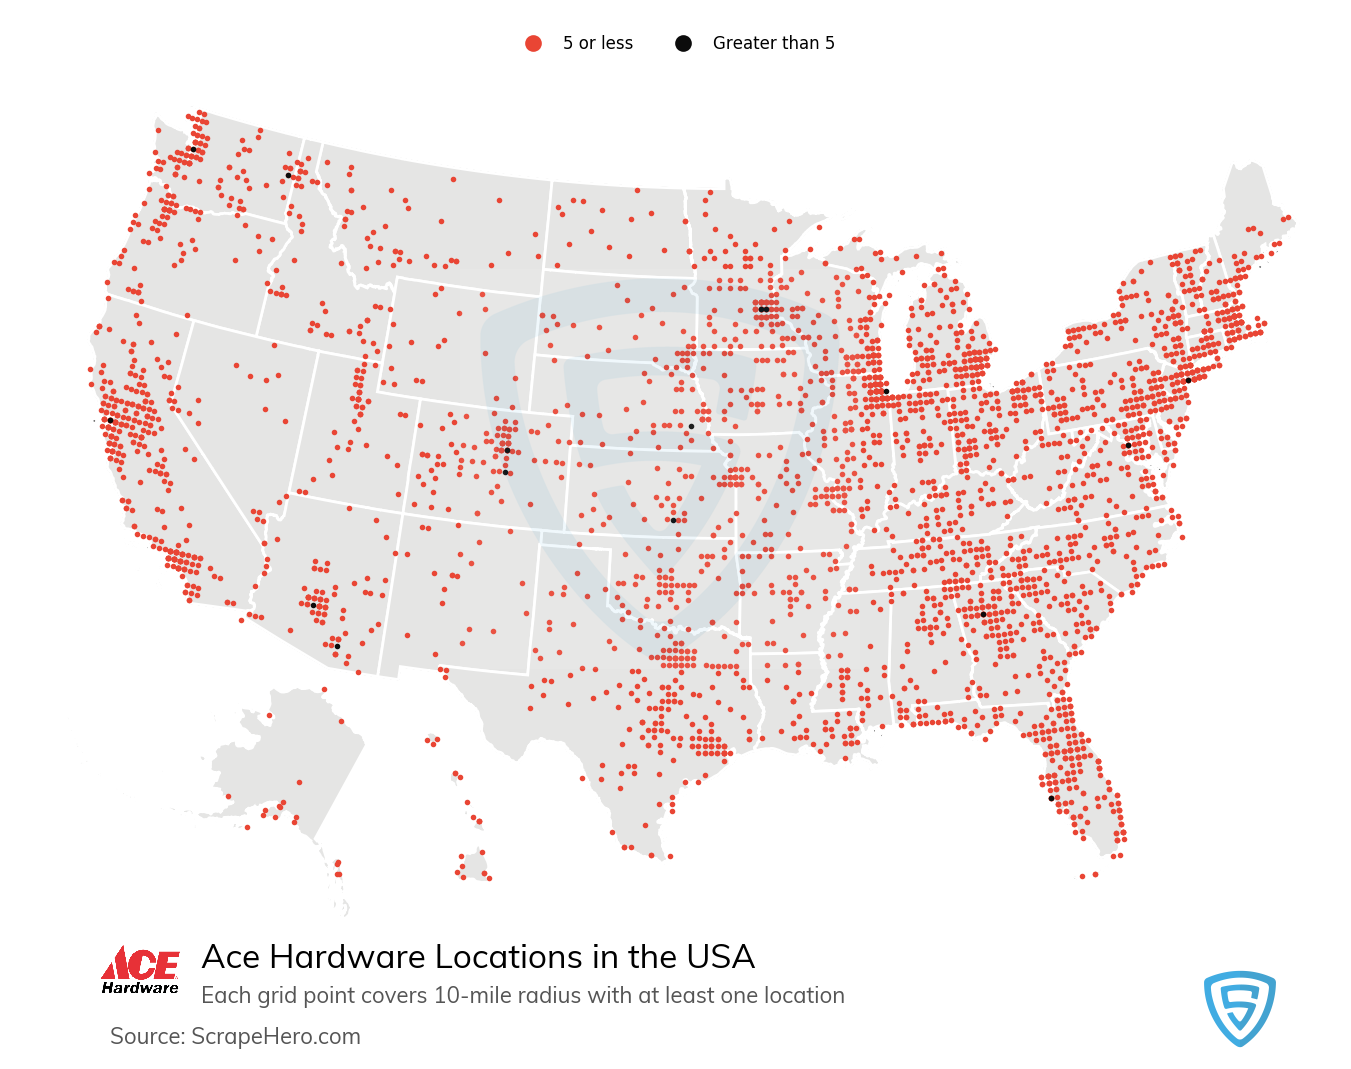 ace-hardware-location-map